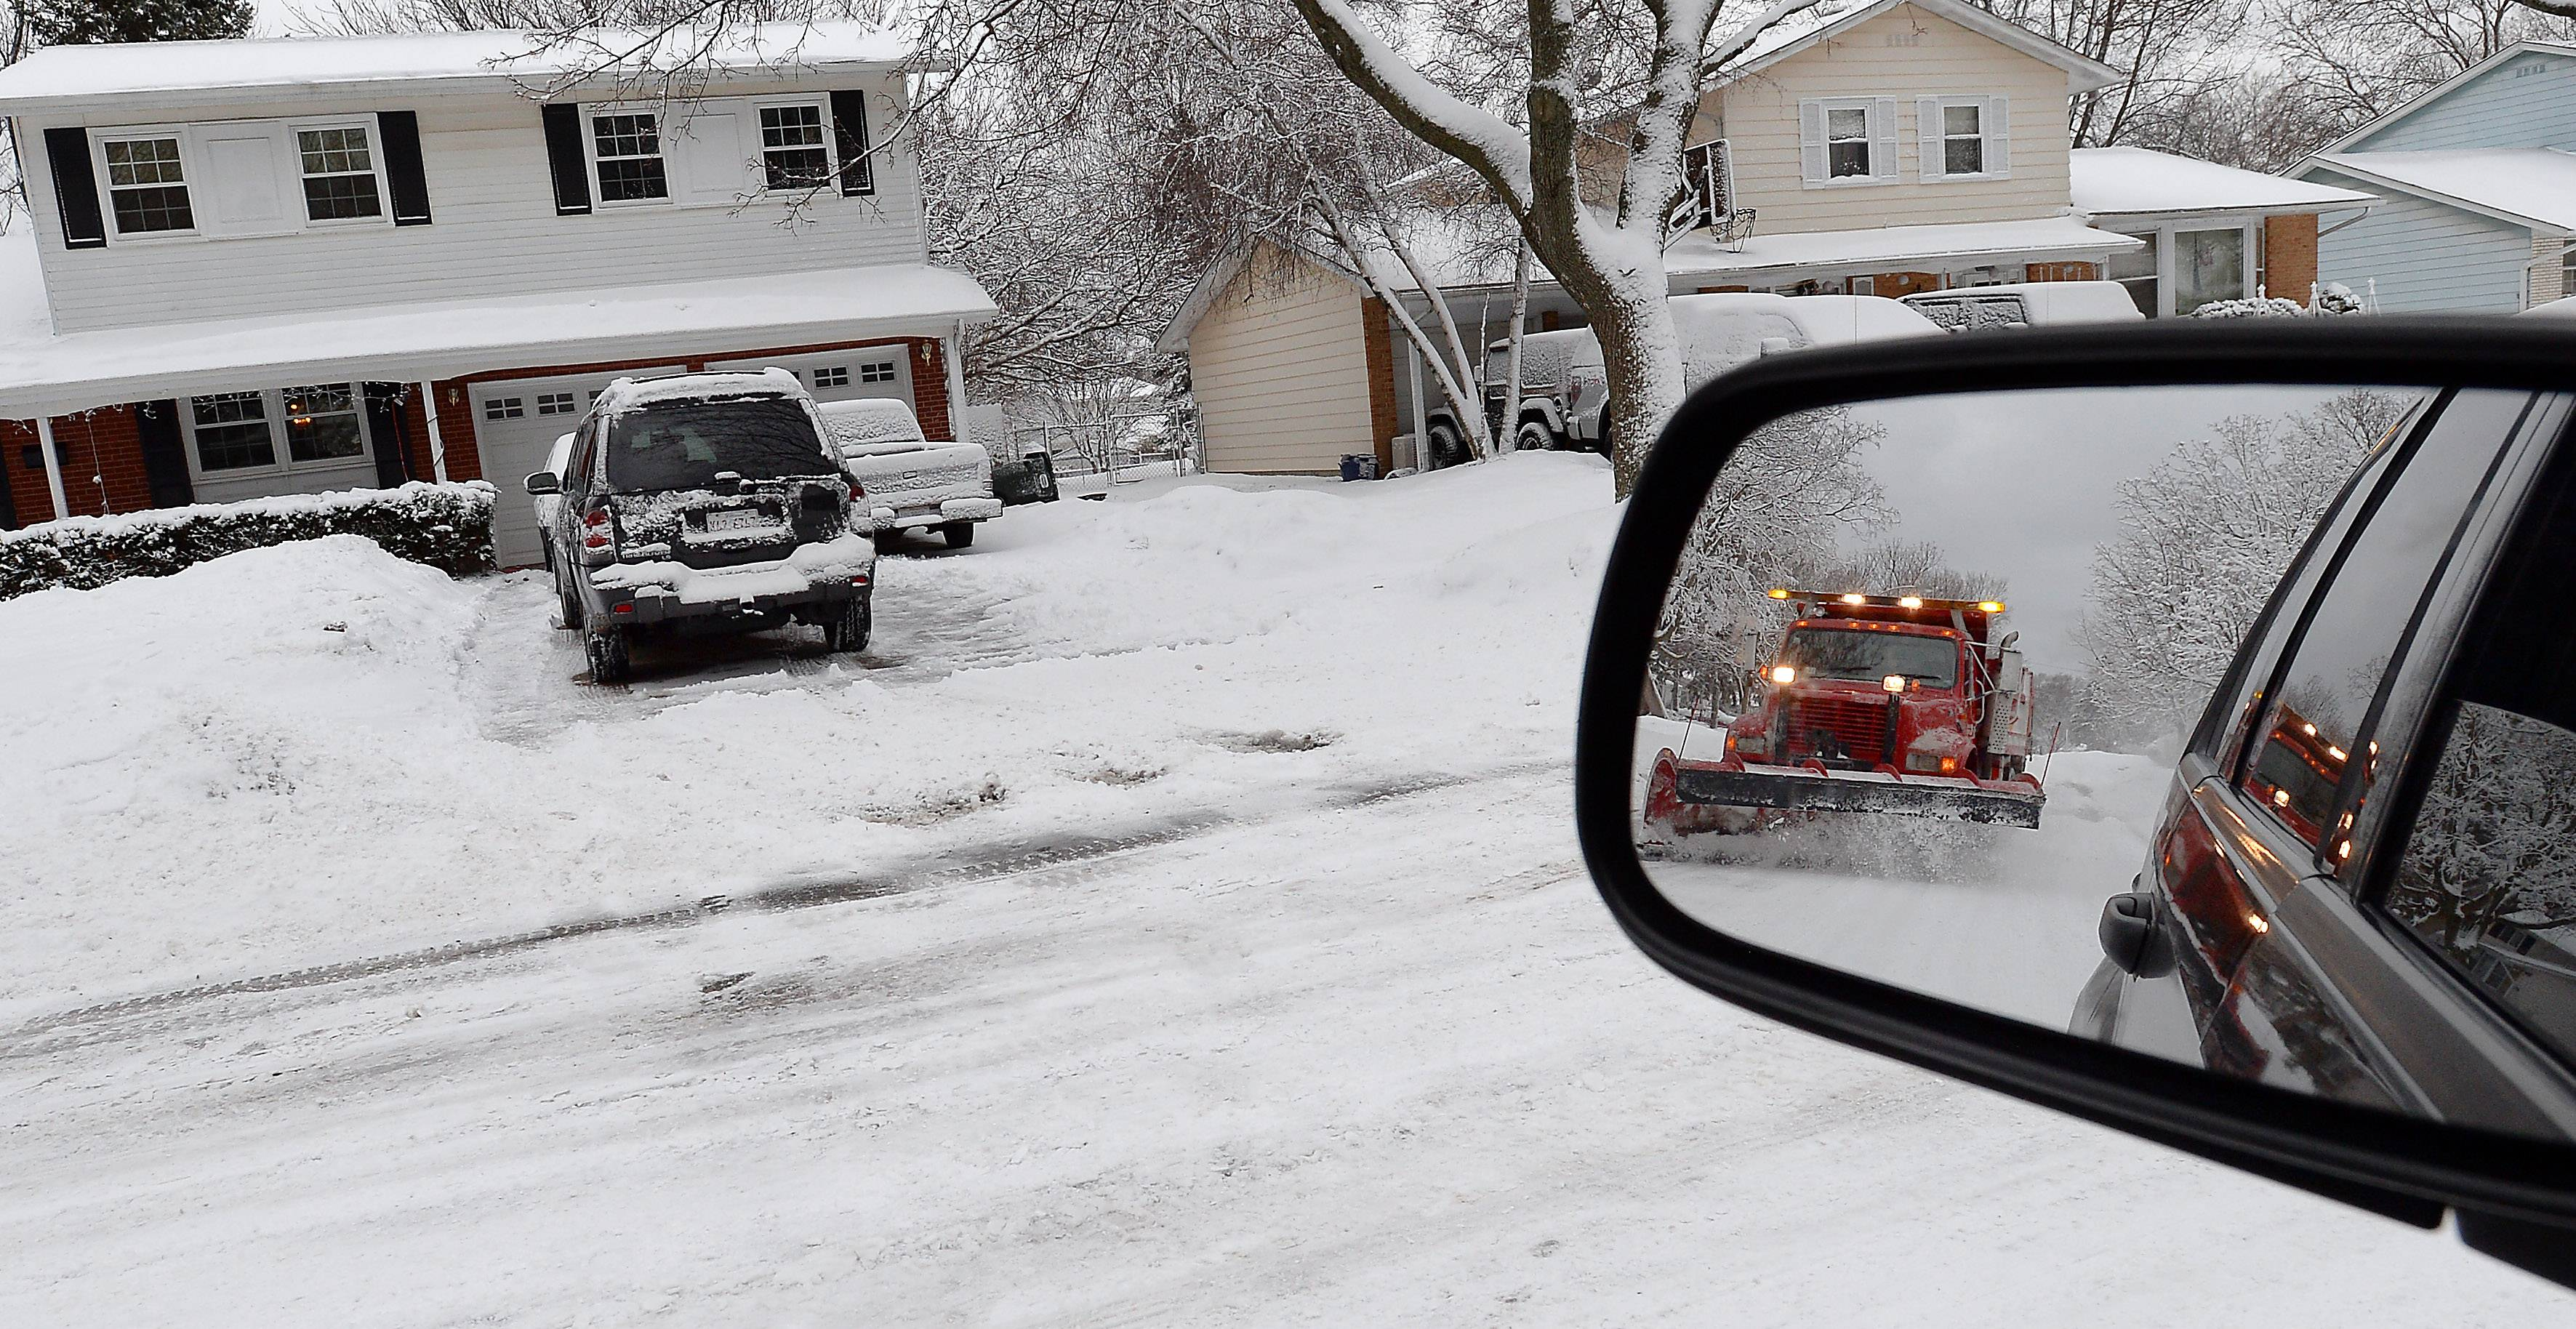 This all too common sight this winter is the snowplow driving through your neighborhood. Today was no exception as another winter blast dumped several inches of snow in the Northwest suburbs around the Palatine area.